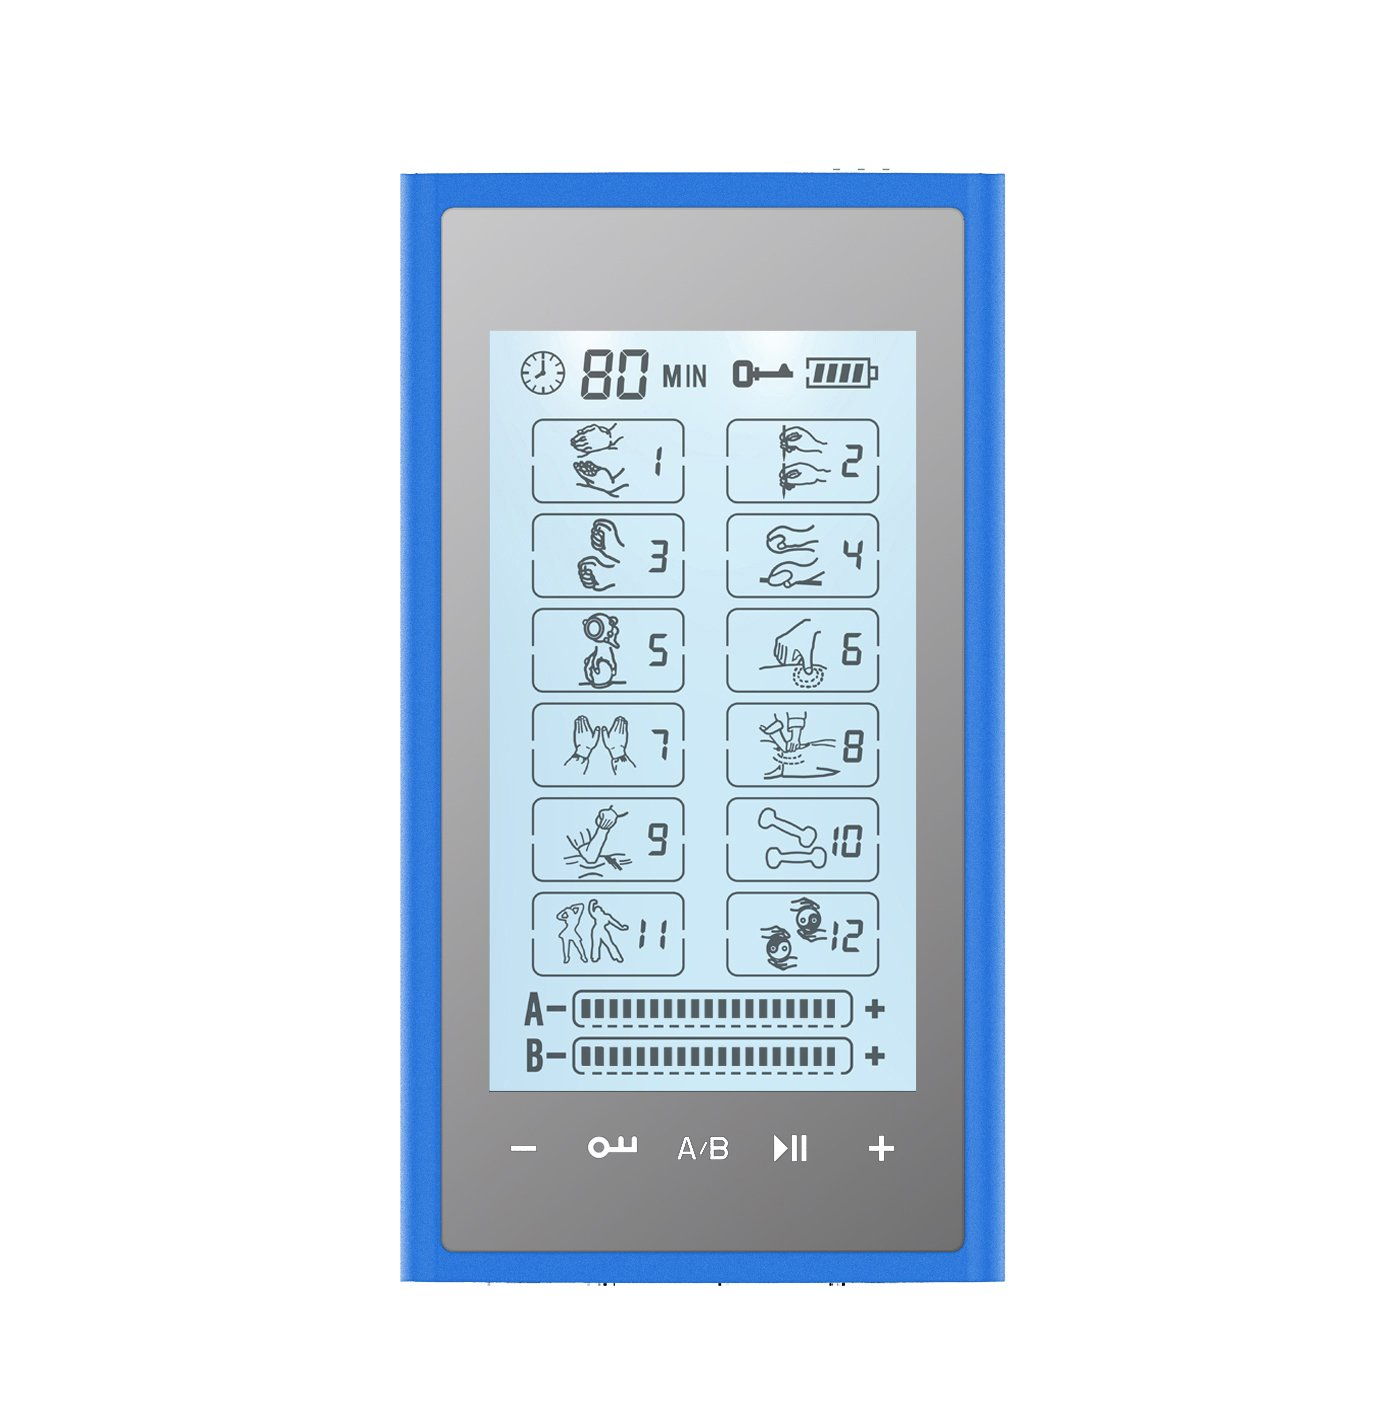 T12AB2 HealthmateForever TENS Unit Electrical Muscle Stimulator Blue in Silver + 10 Pairs of Pads